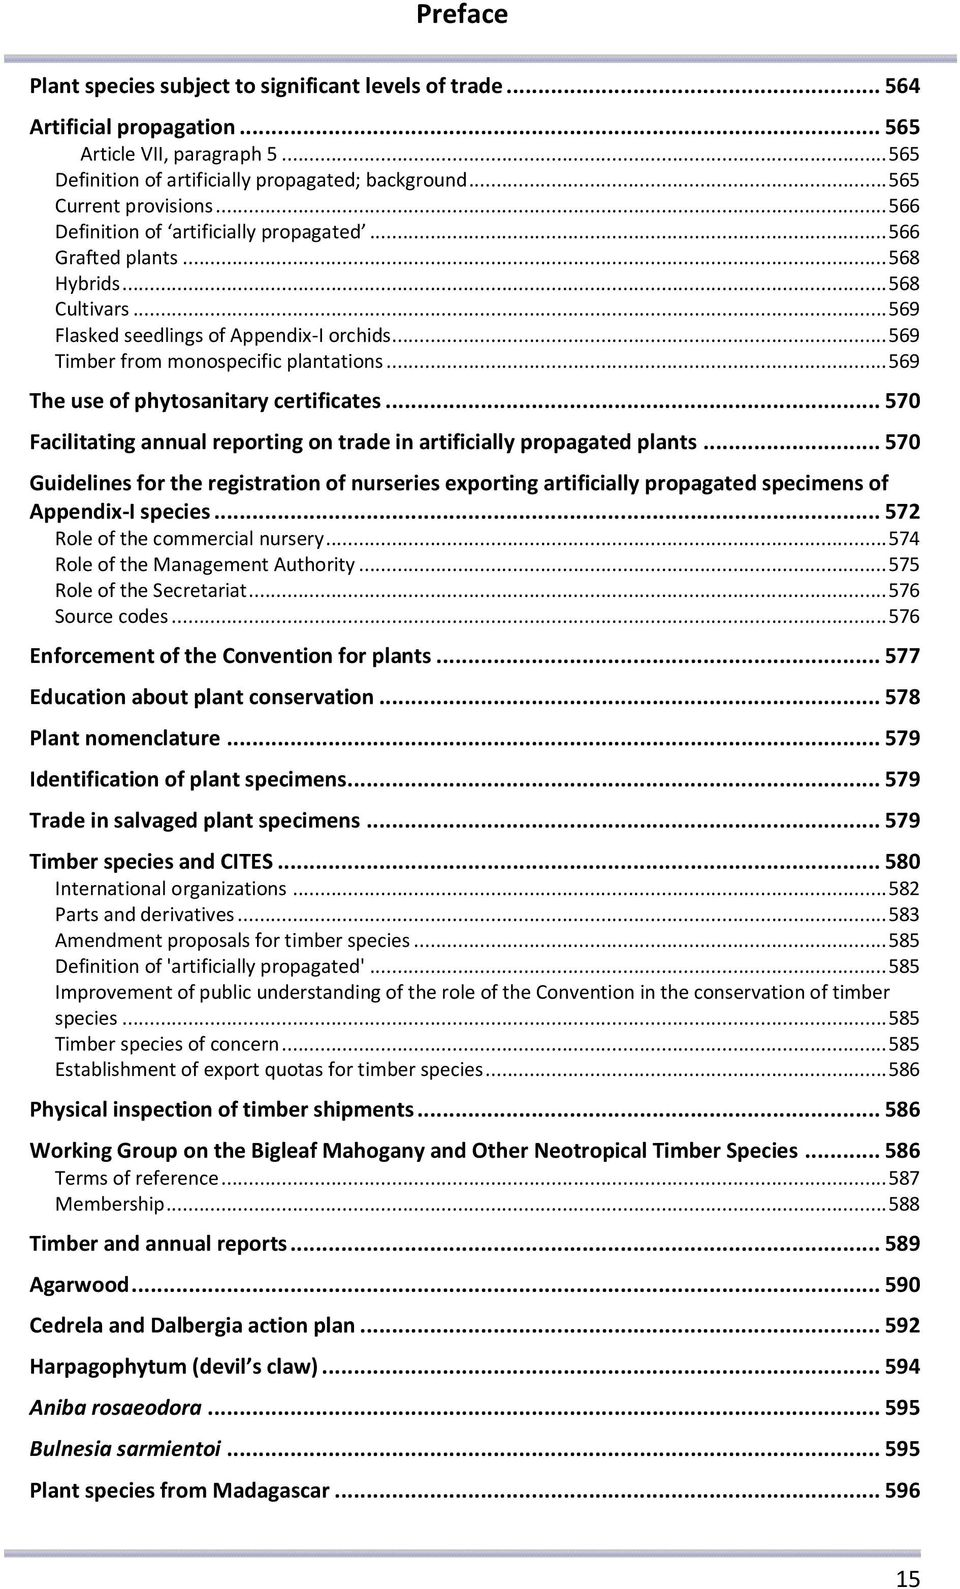 .. 569 Timber from monospecific plantations... 569 The use of phytosanitary certificates... 570 Facilitating annual reporting on trade in artificially propagated plants.